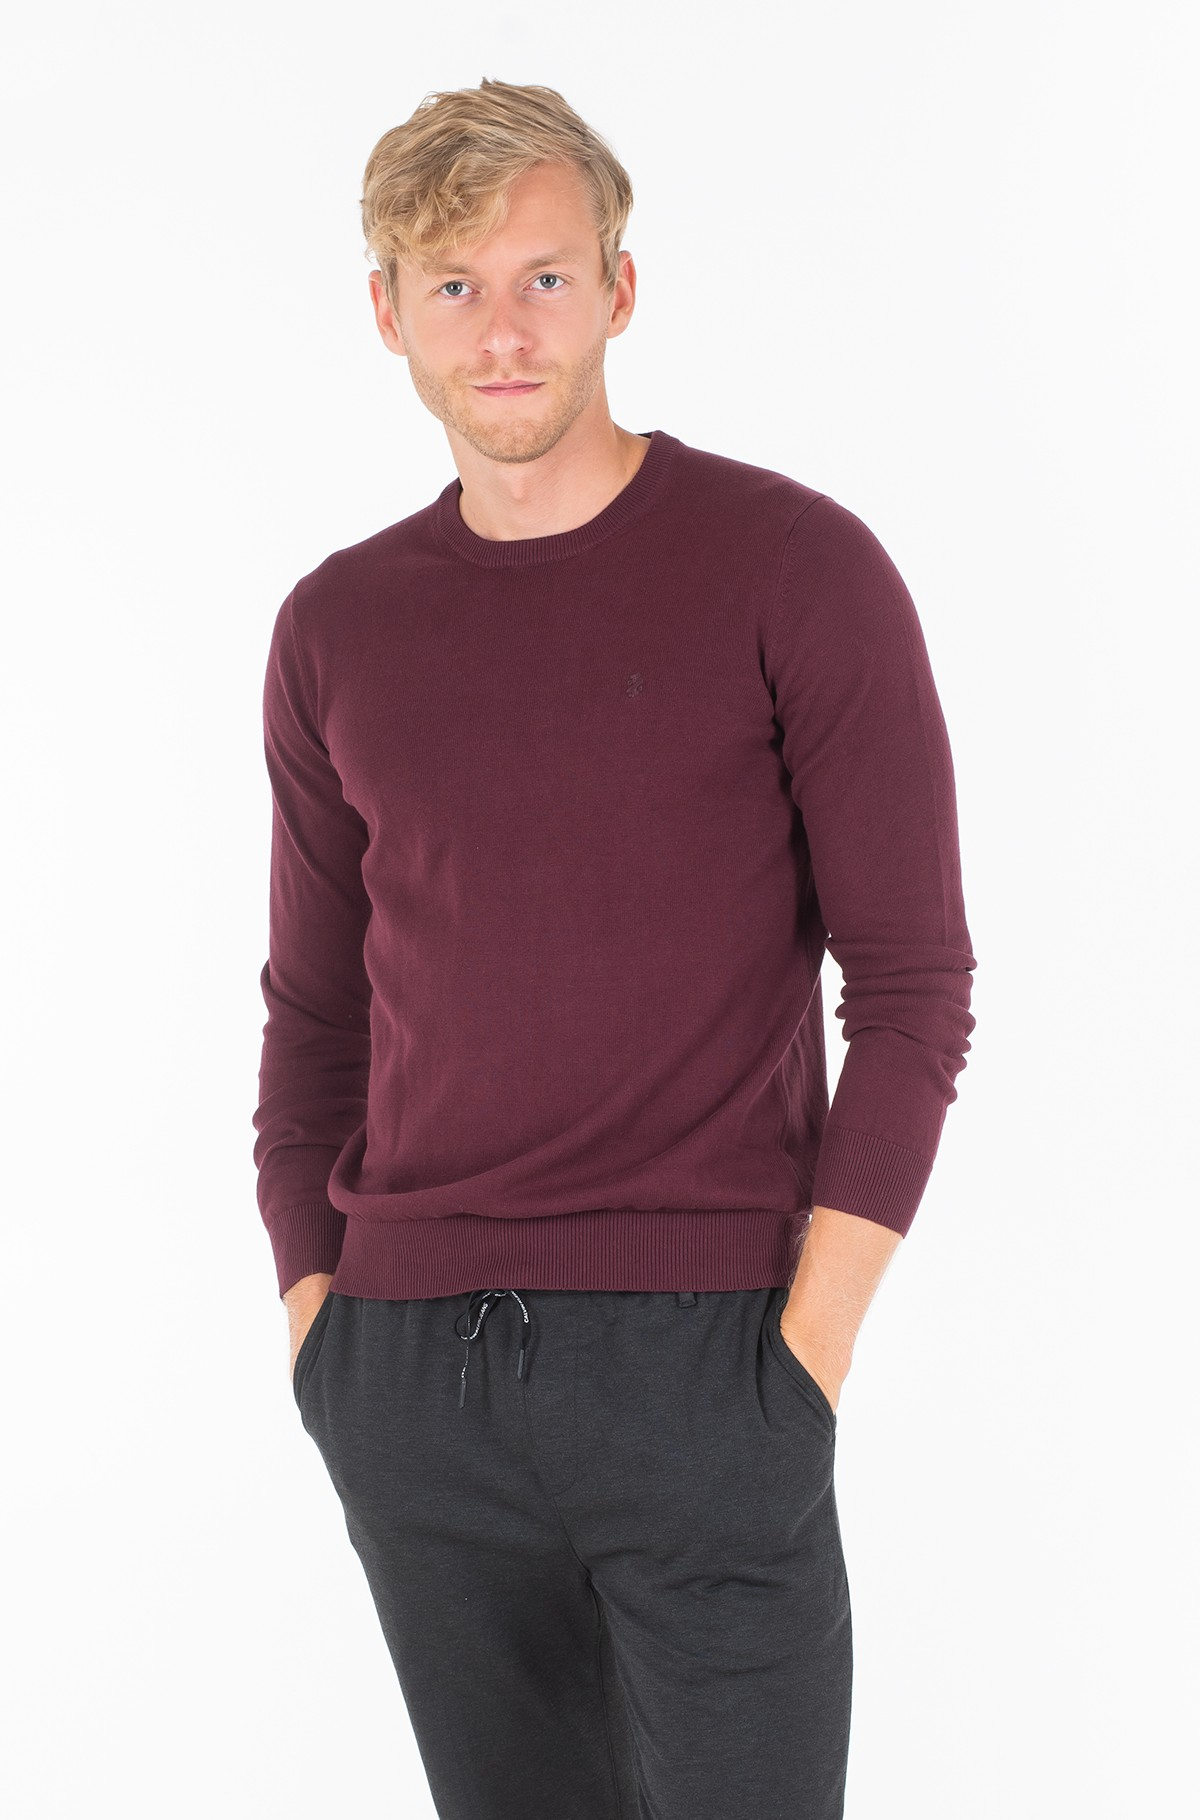 Sviiter 12GG CREW NECK SWEATER-full-1